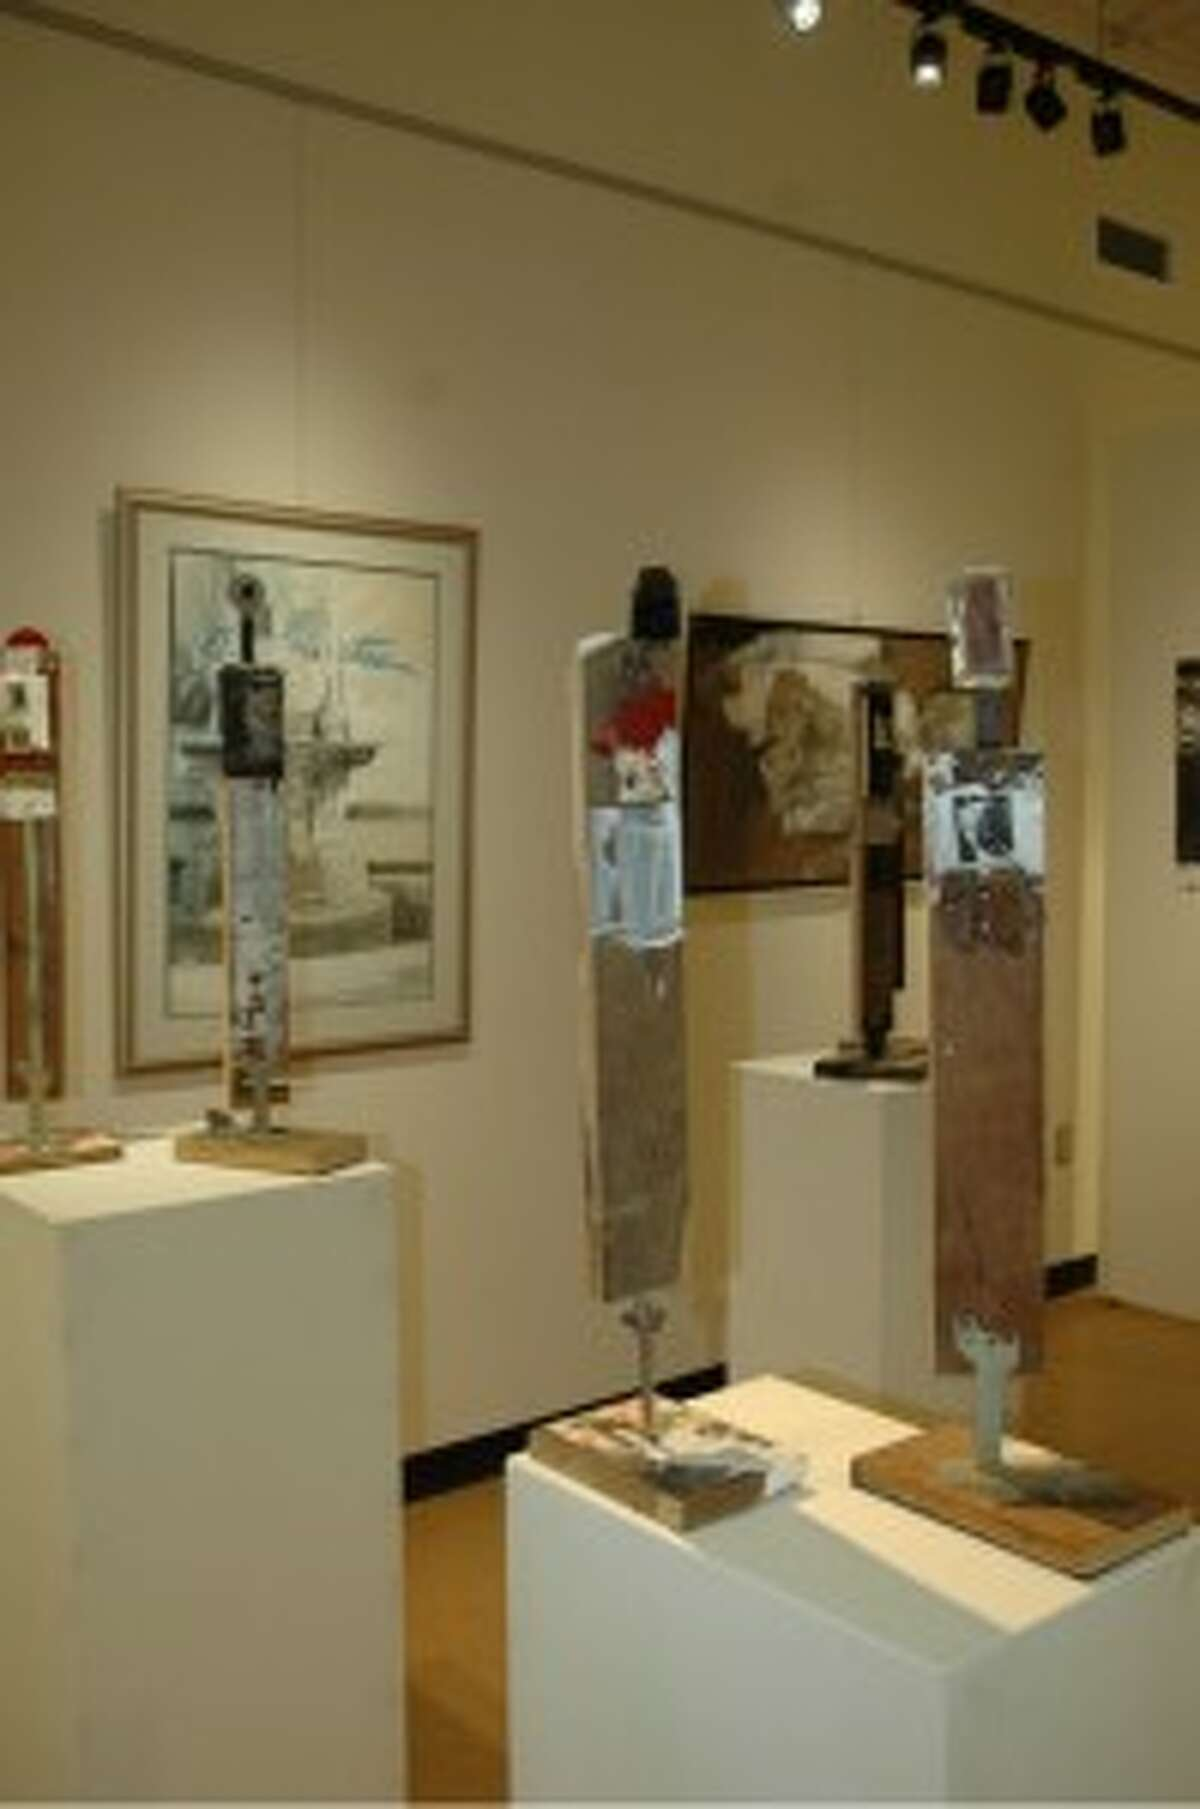 IRONWORKS: The art of Ken Cooper will be showcased at West Shore Community College's Manierre Dawson Gallery until Feb. 20. (Courtesy Photo)